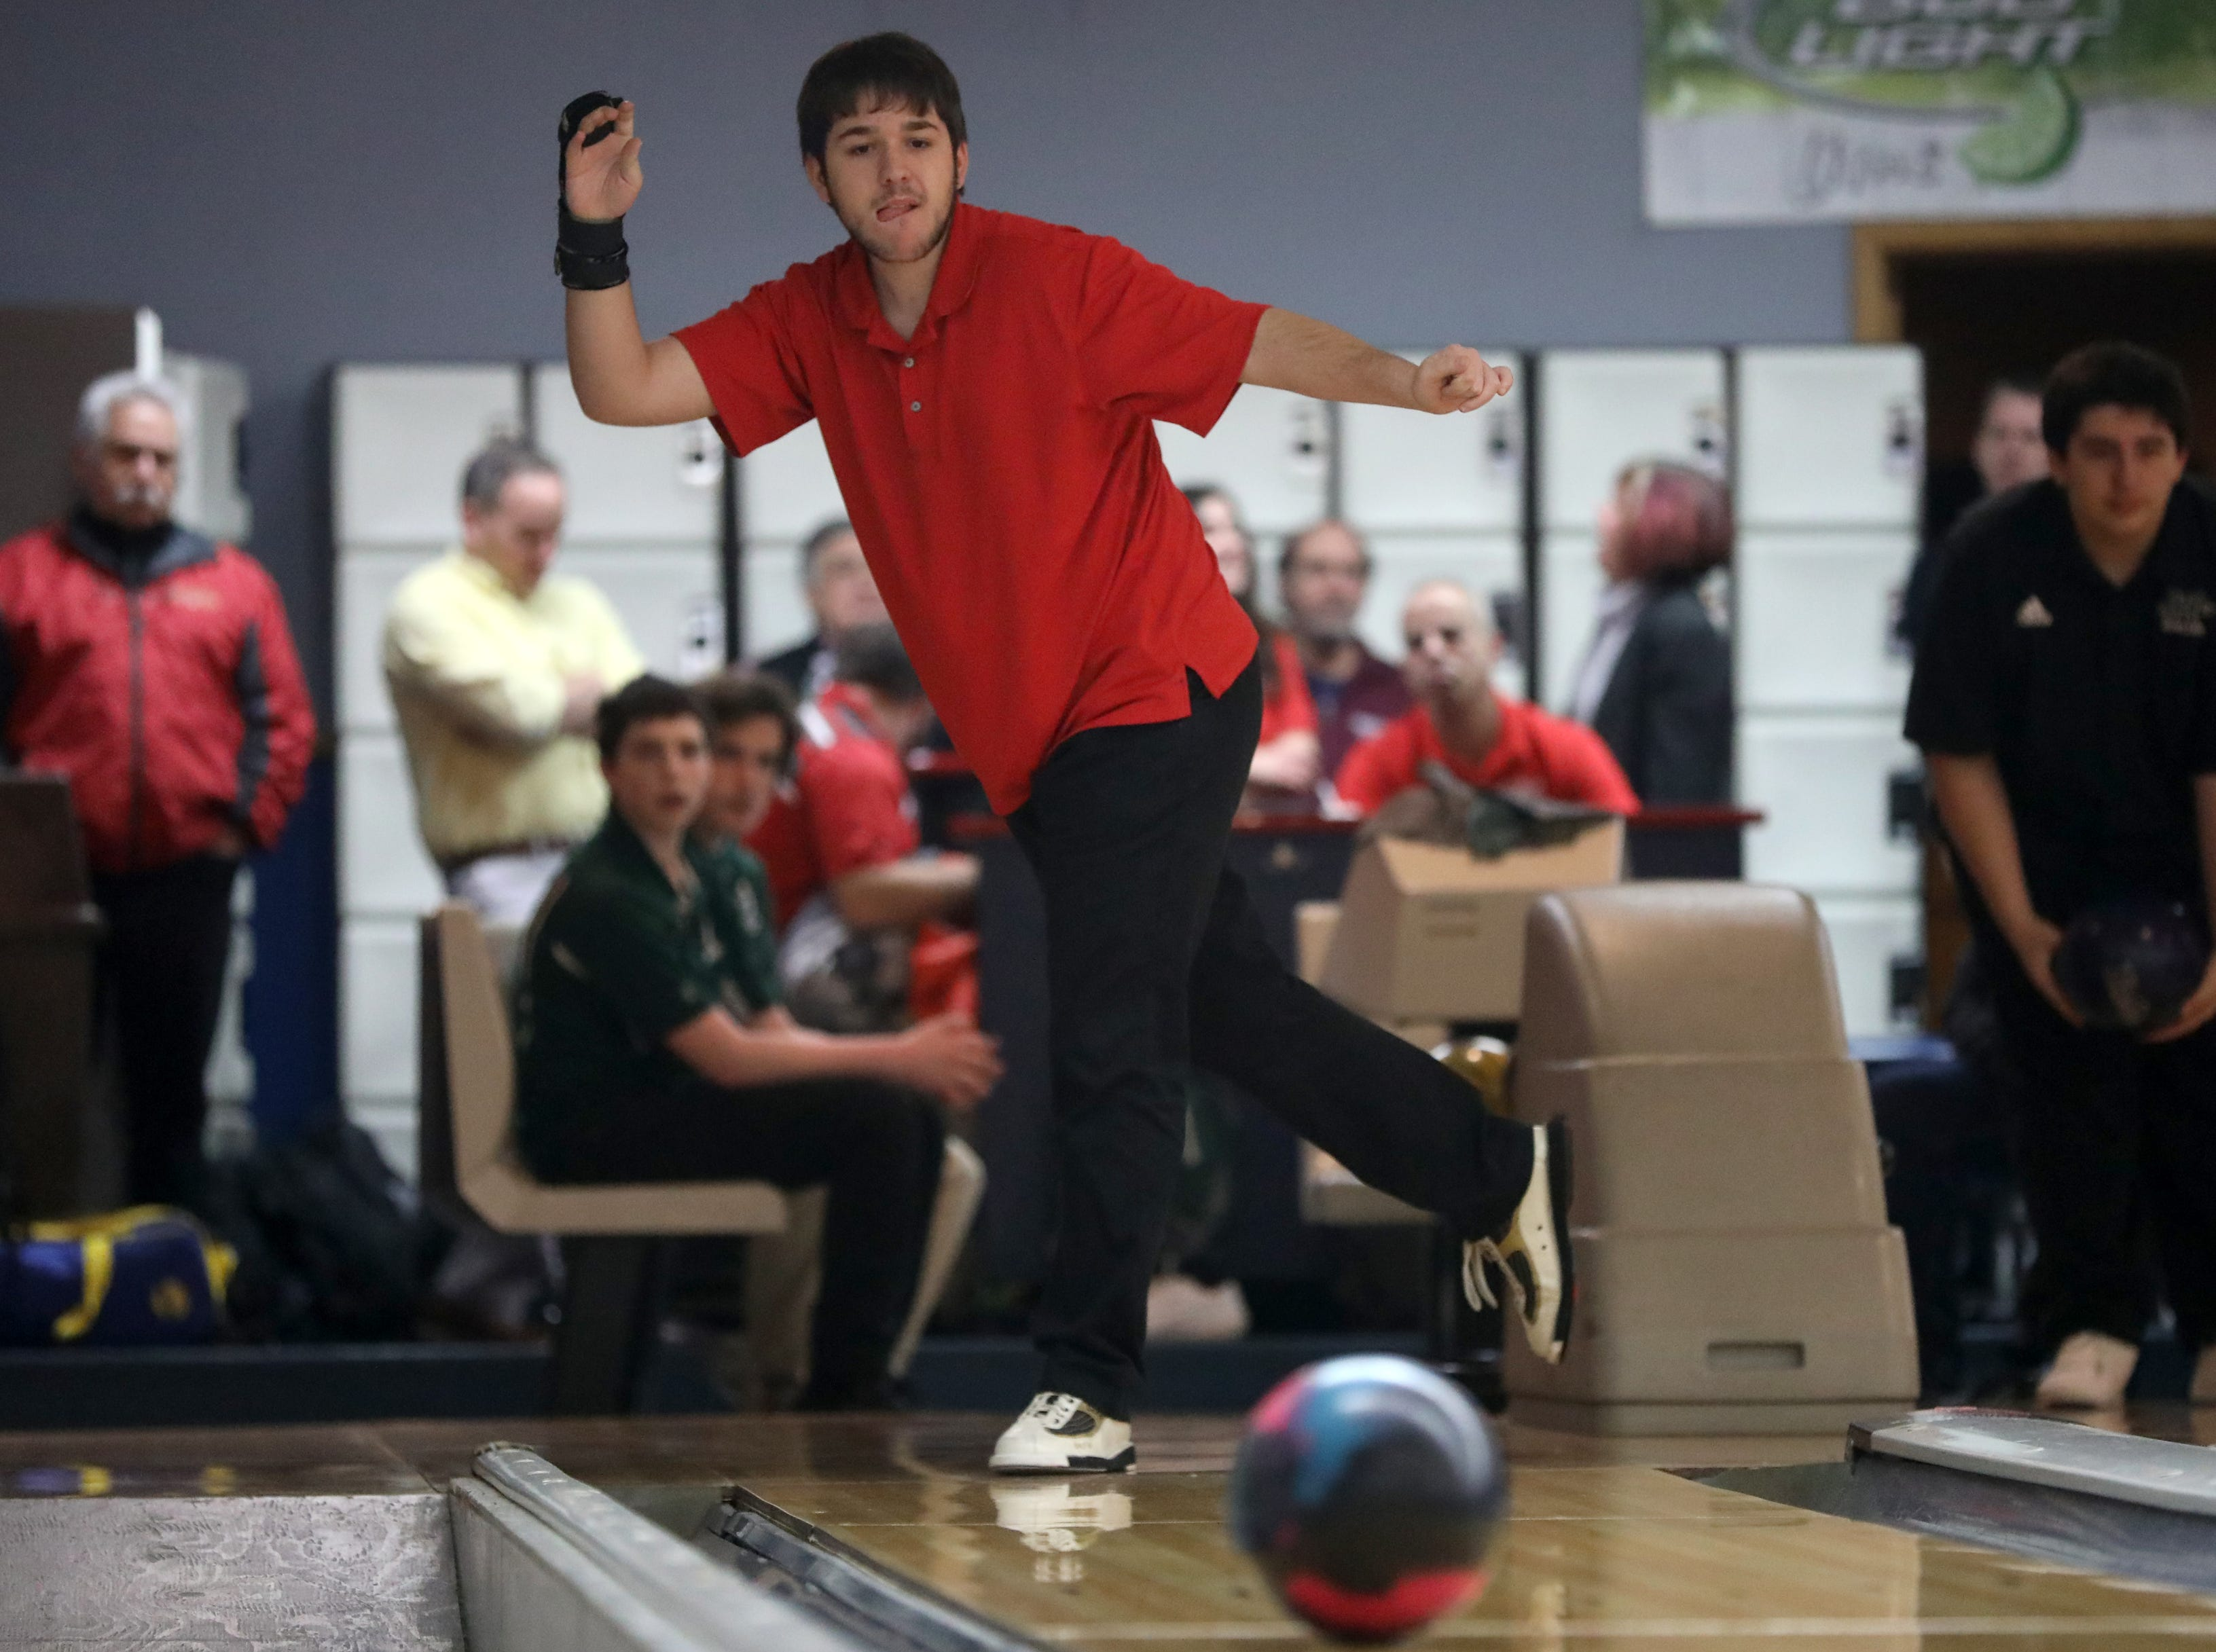 Max Di Alfonso, of Mt. Olive, competes in the Morris County Bowling Tournament. Thursday, January 24, 2019